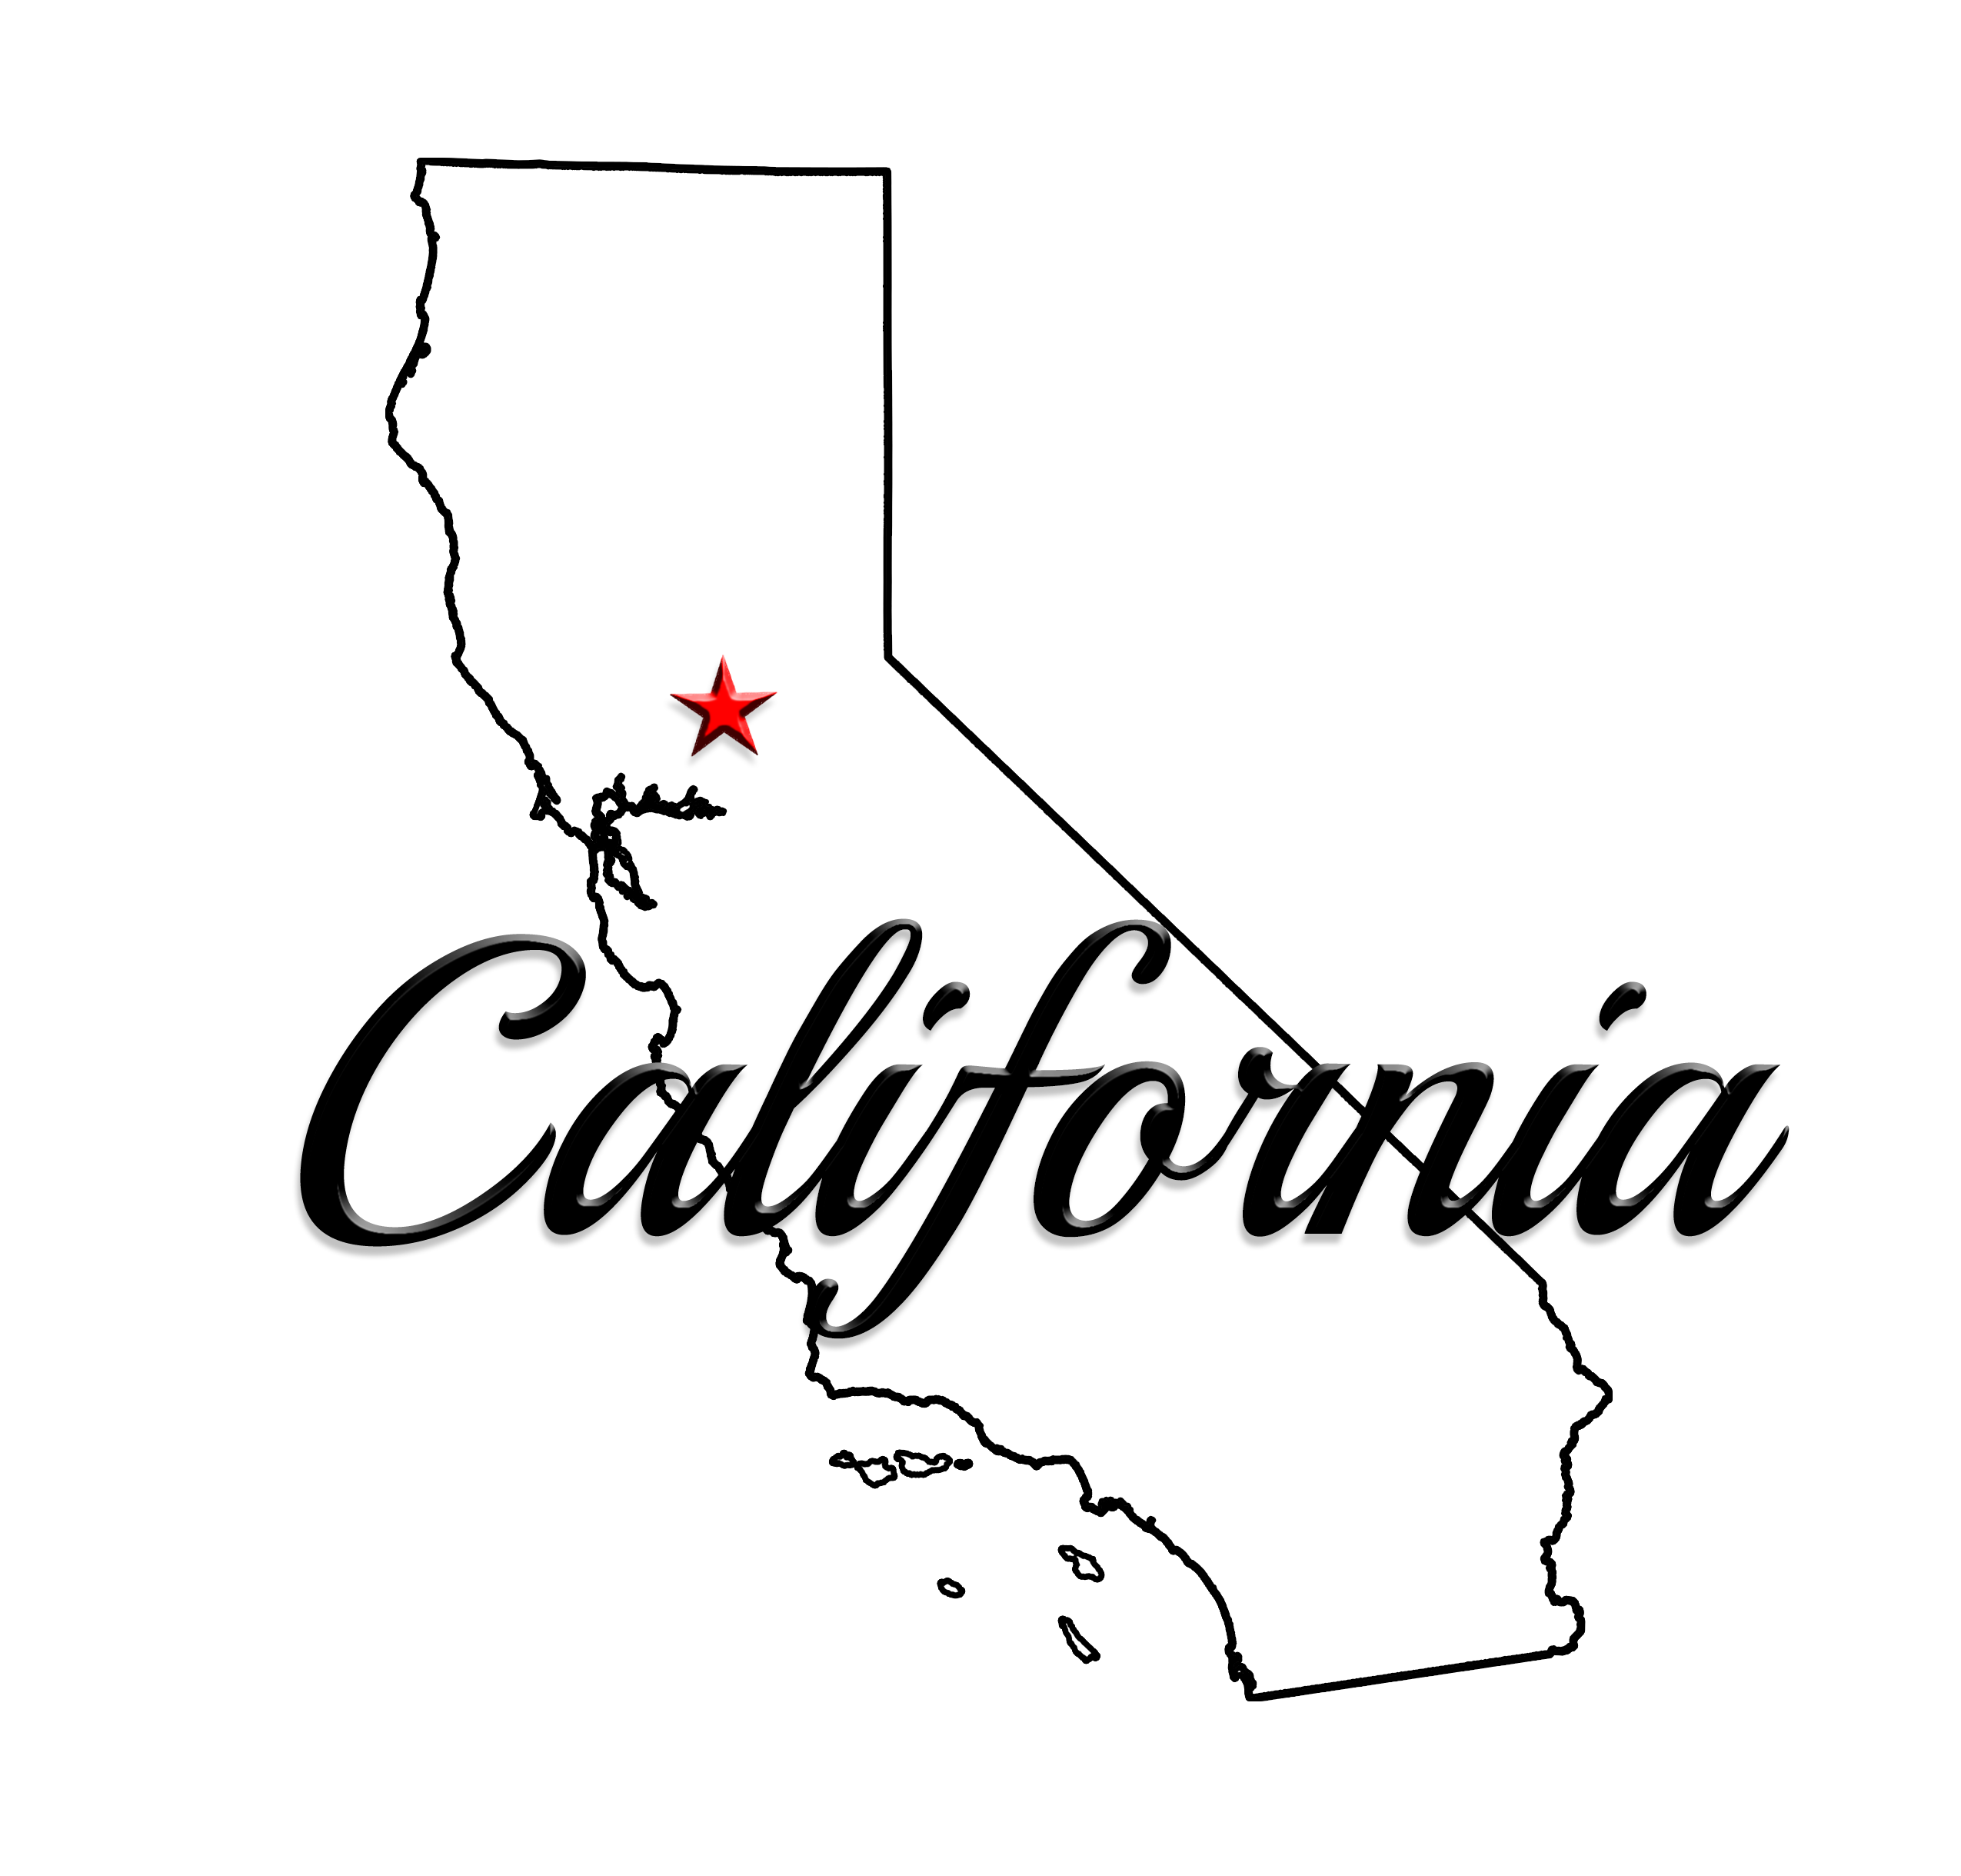 Us map showing california clipart clipart library California clipart cali FREE for download on rpelm clipart library